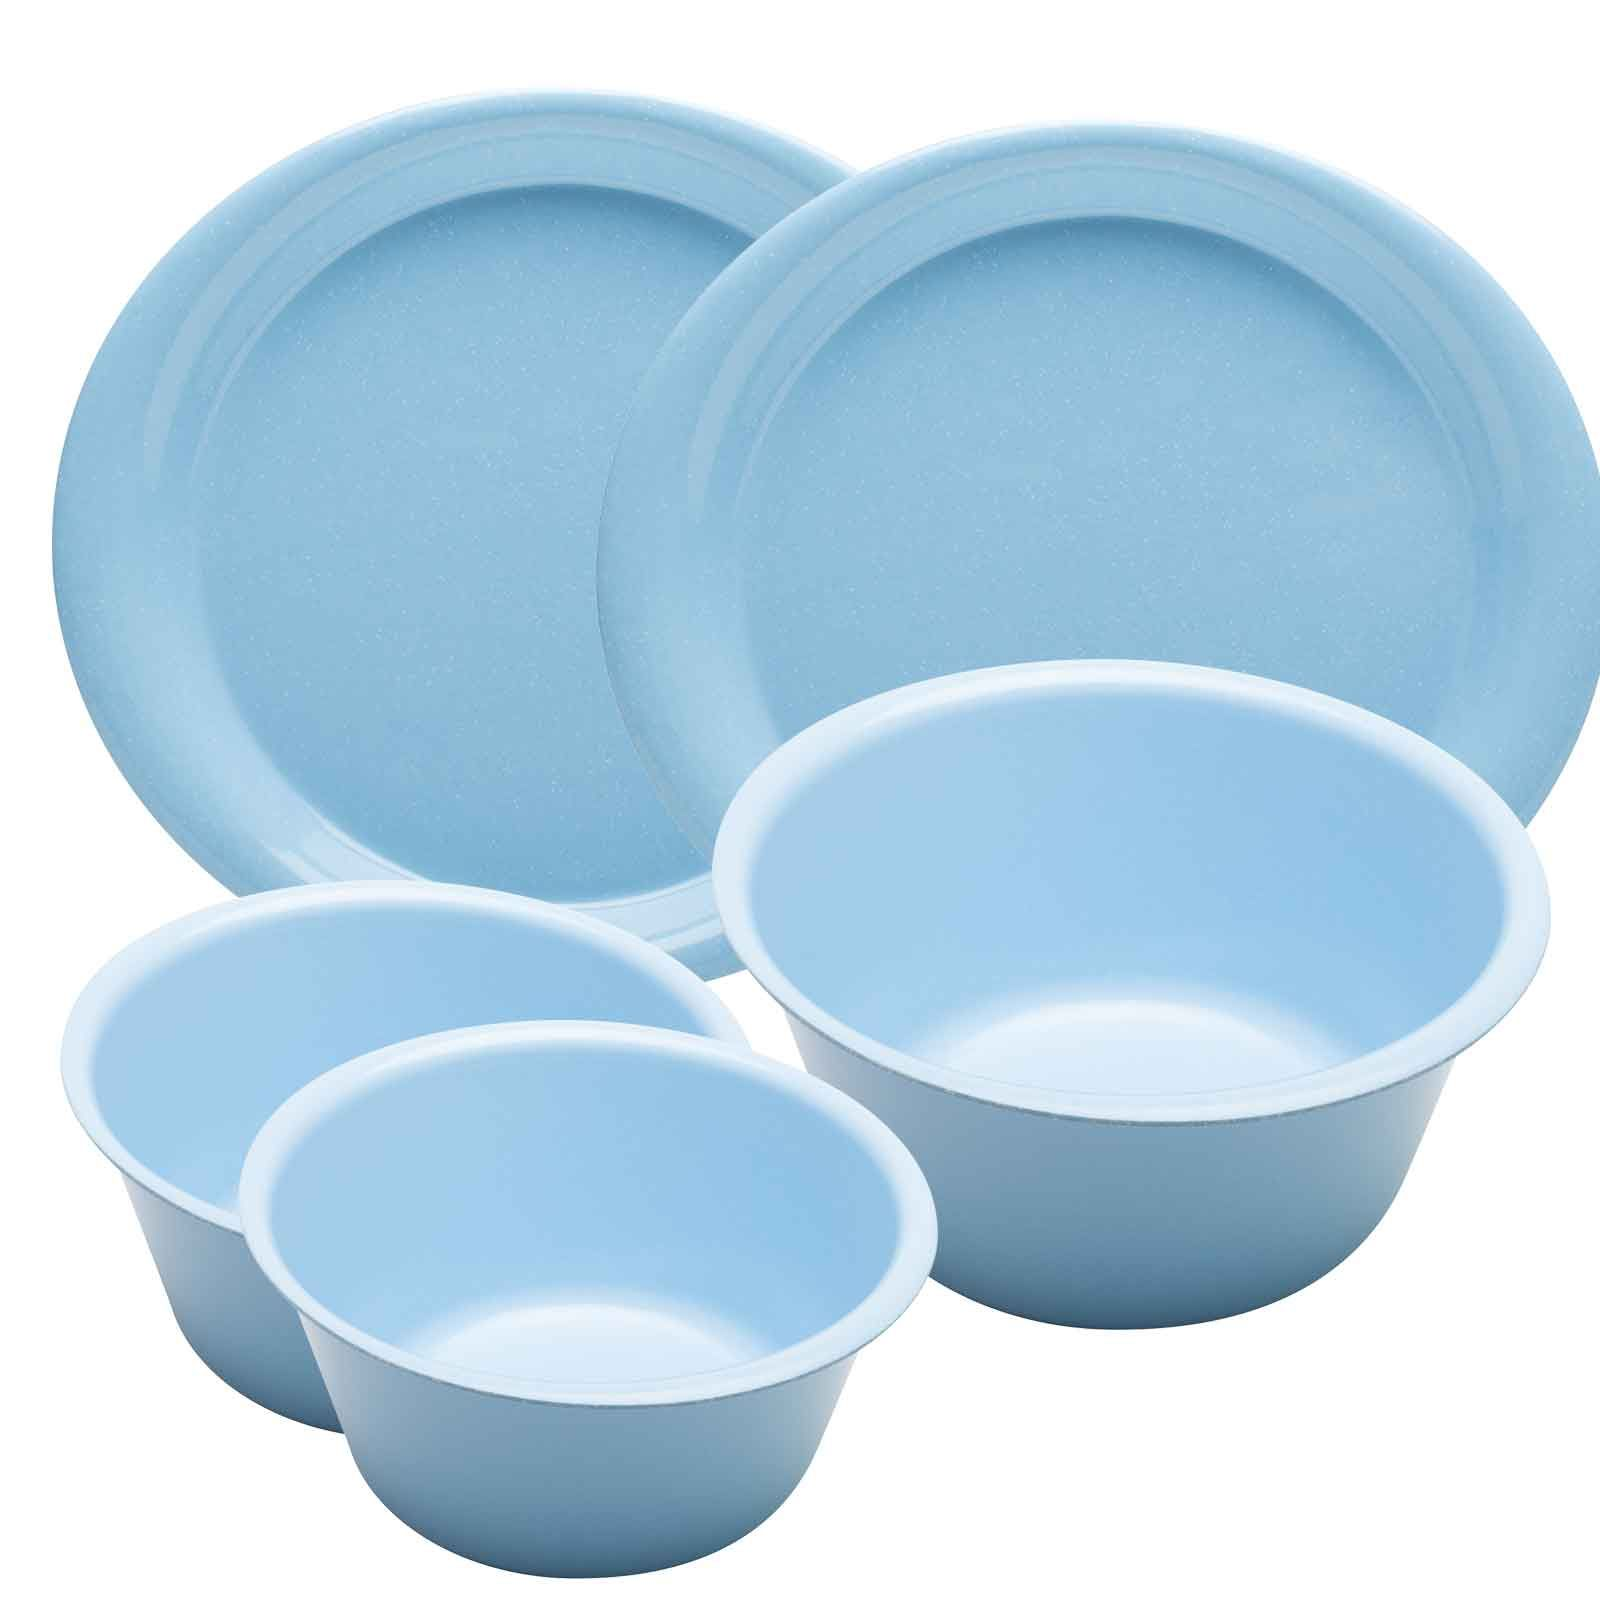 Zakwave microwavable plates are durable and lightweight unlike most microwavable dishes. Theyu0027re the perfect microwave plates for kids or college students.  sc 1 st  Pinterest & 2 Dinner Plates 2 Bowls and Large Bowl Microwave safe | College ...